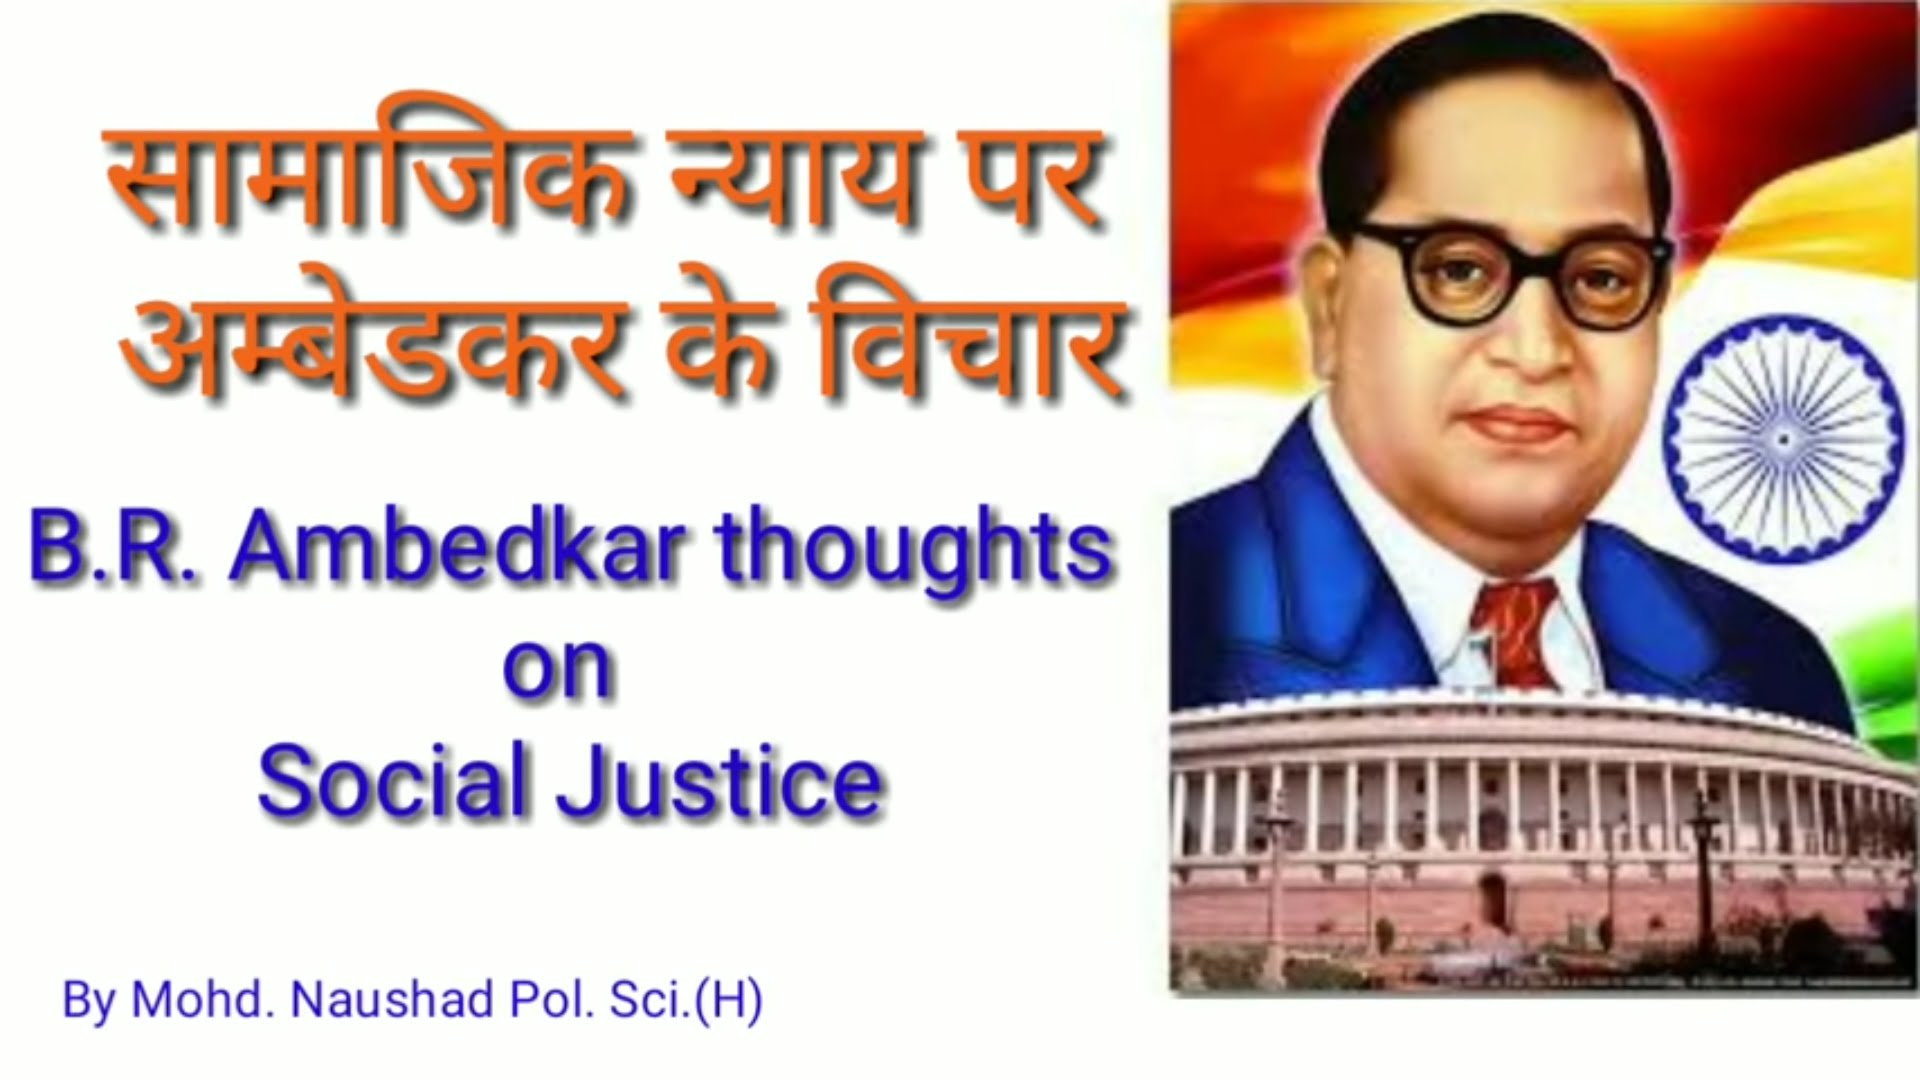 Thoughts of B.R. Amberdkar on social justice hindi